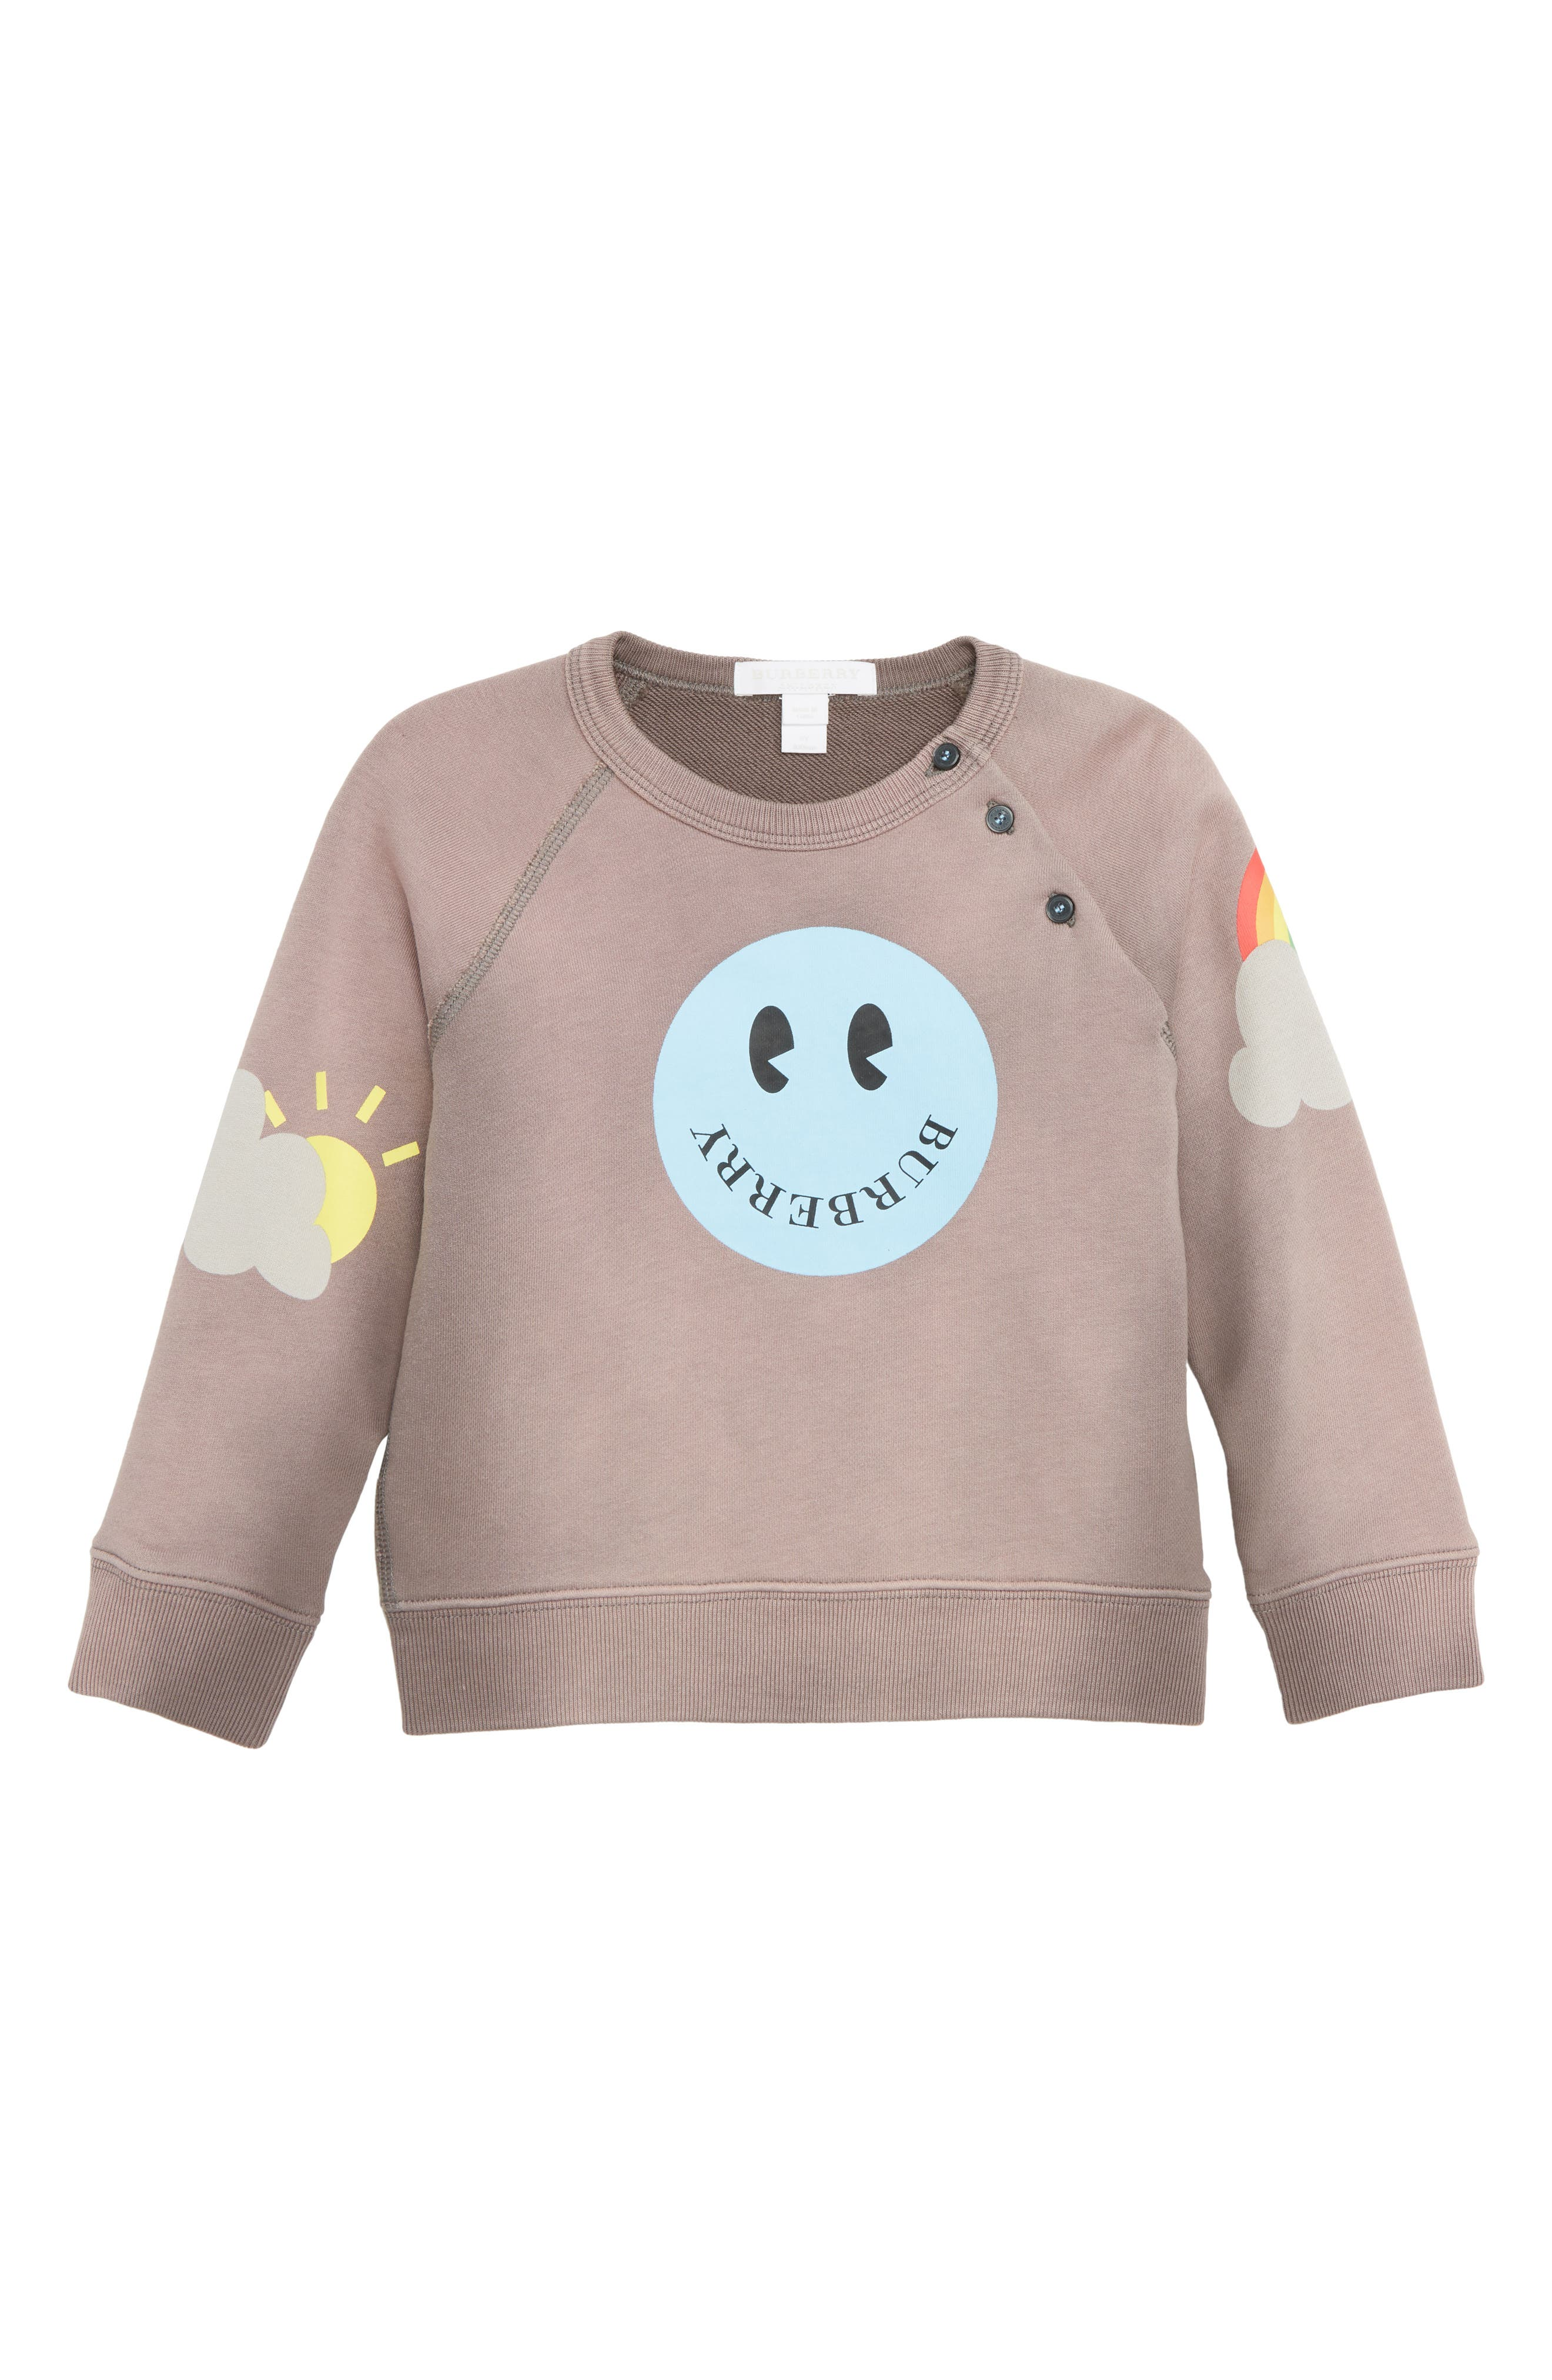 Smiley Face Sweatshirt,                             Main thumbnail 1, color,                             MAUVE